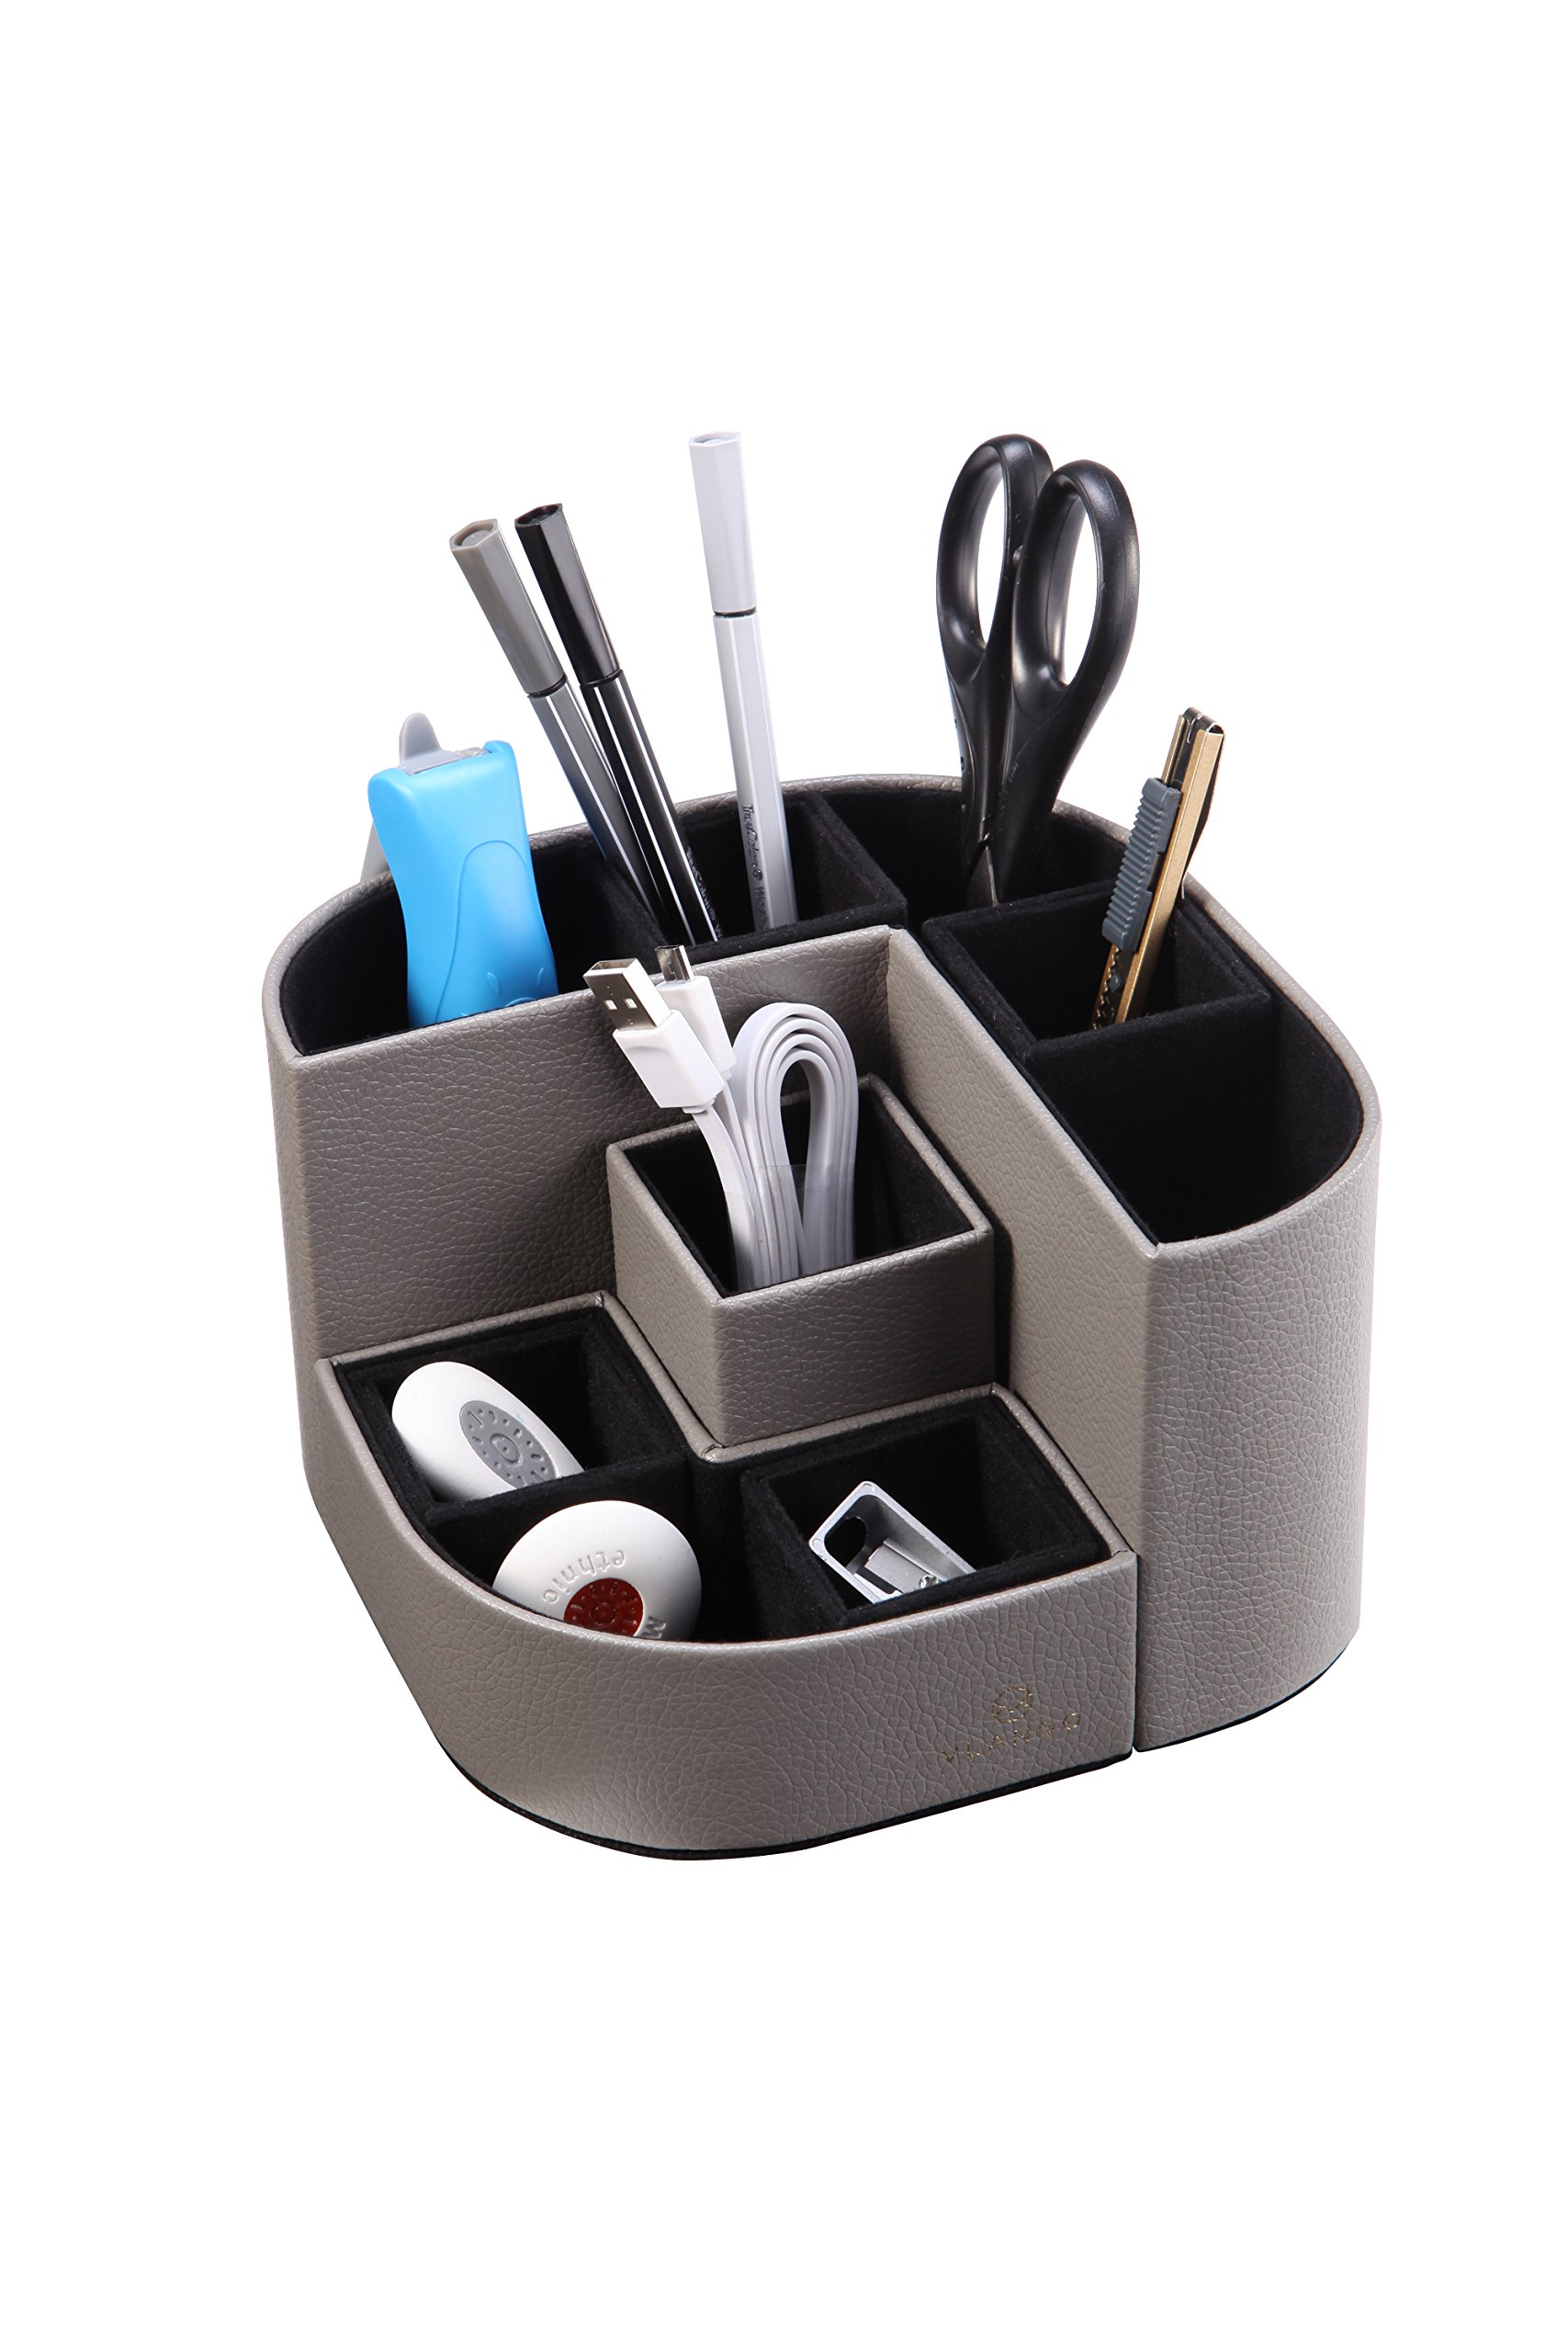 VPACK F04 Magnetic Pen Holder, Durable PU Desk Organizer with 7 Multi Functional Compartments for all Office Supplies -Grey